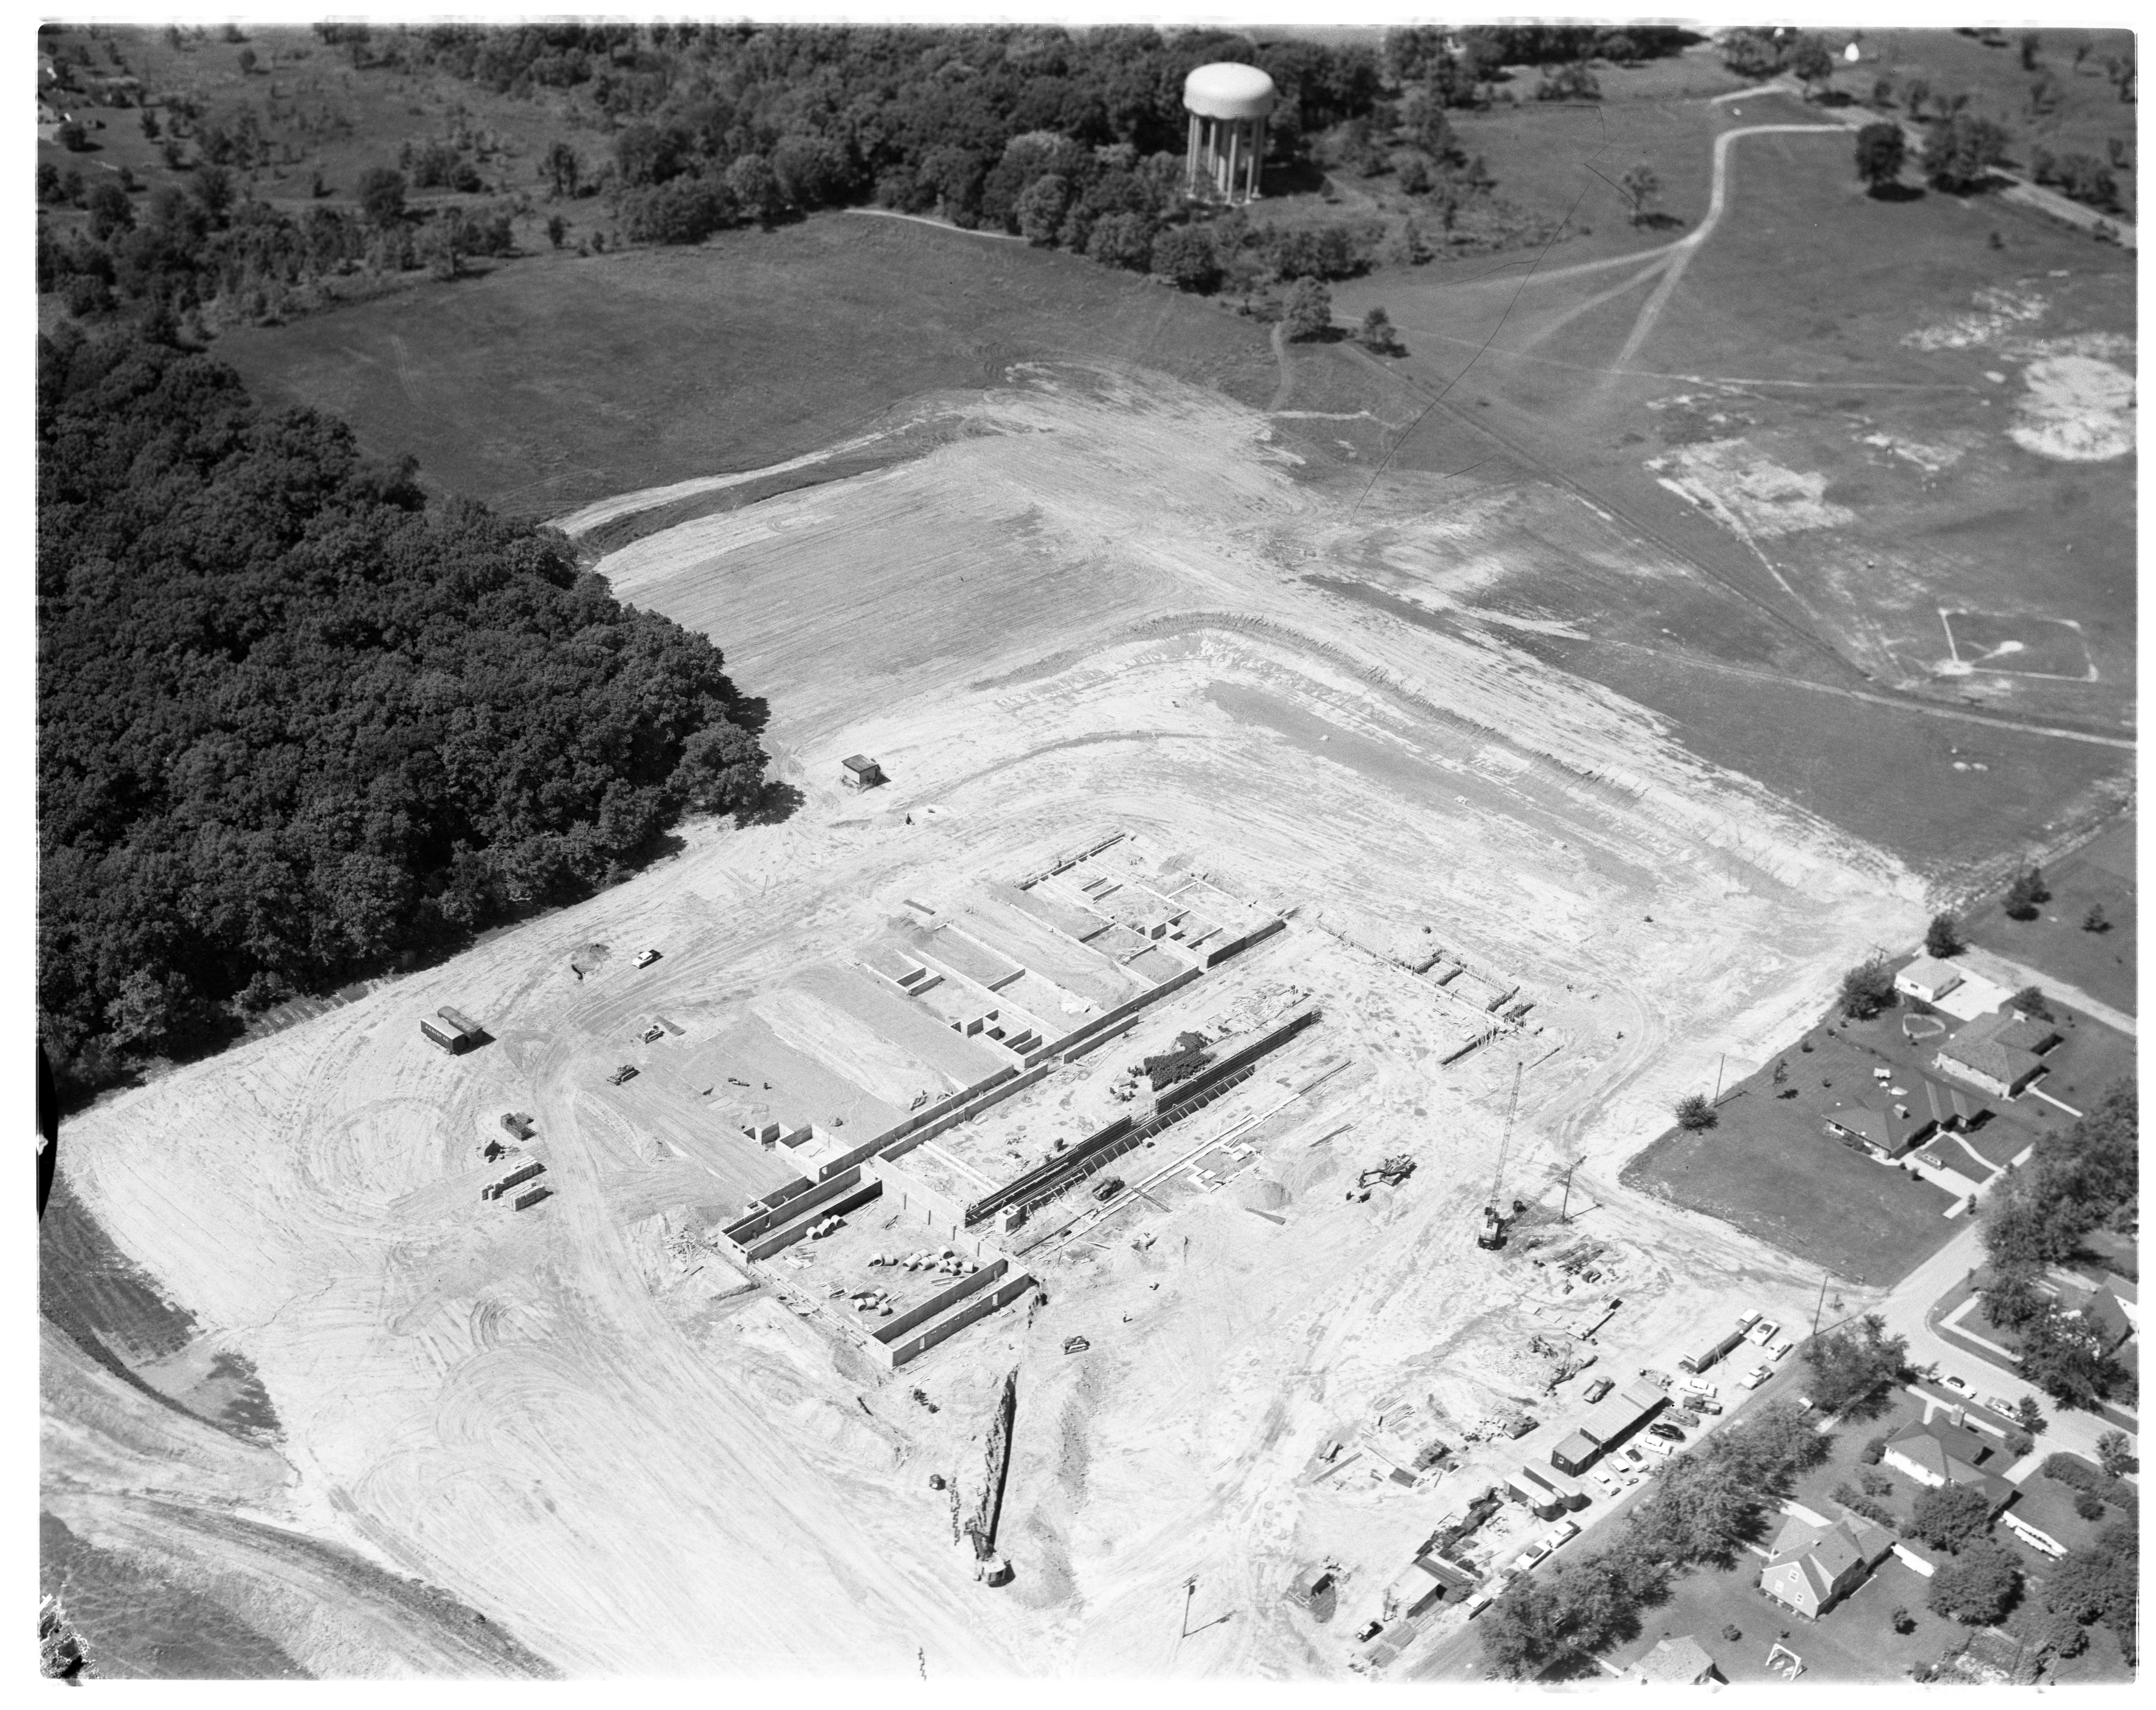 Aerial Photograph of New Ypsilanti Township Junior High School Building, September 1958 image